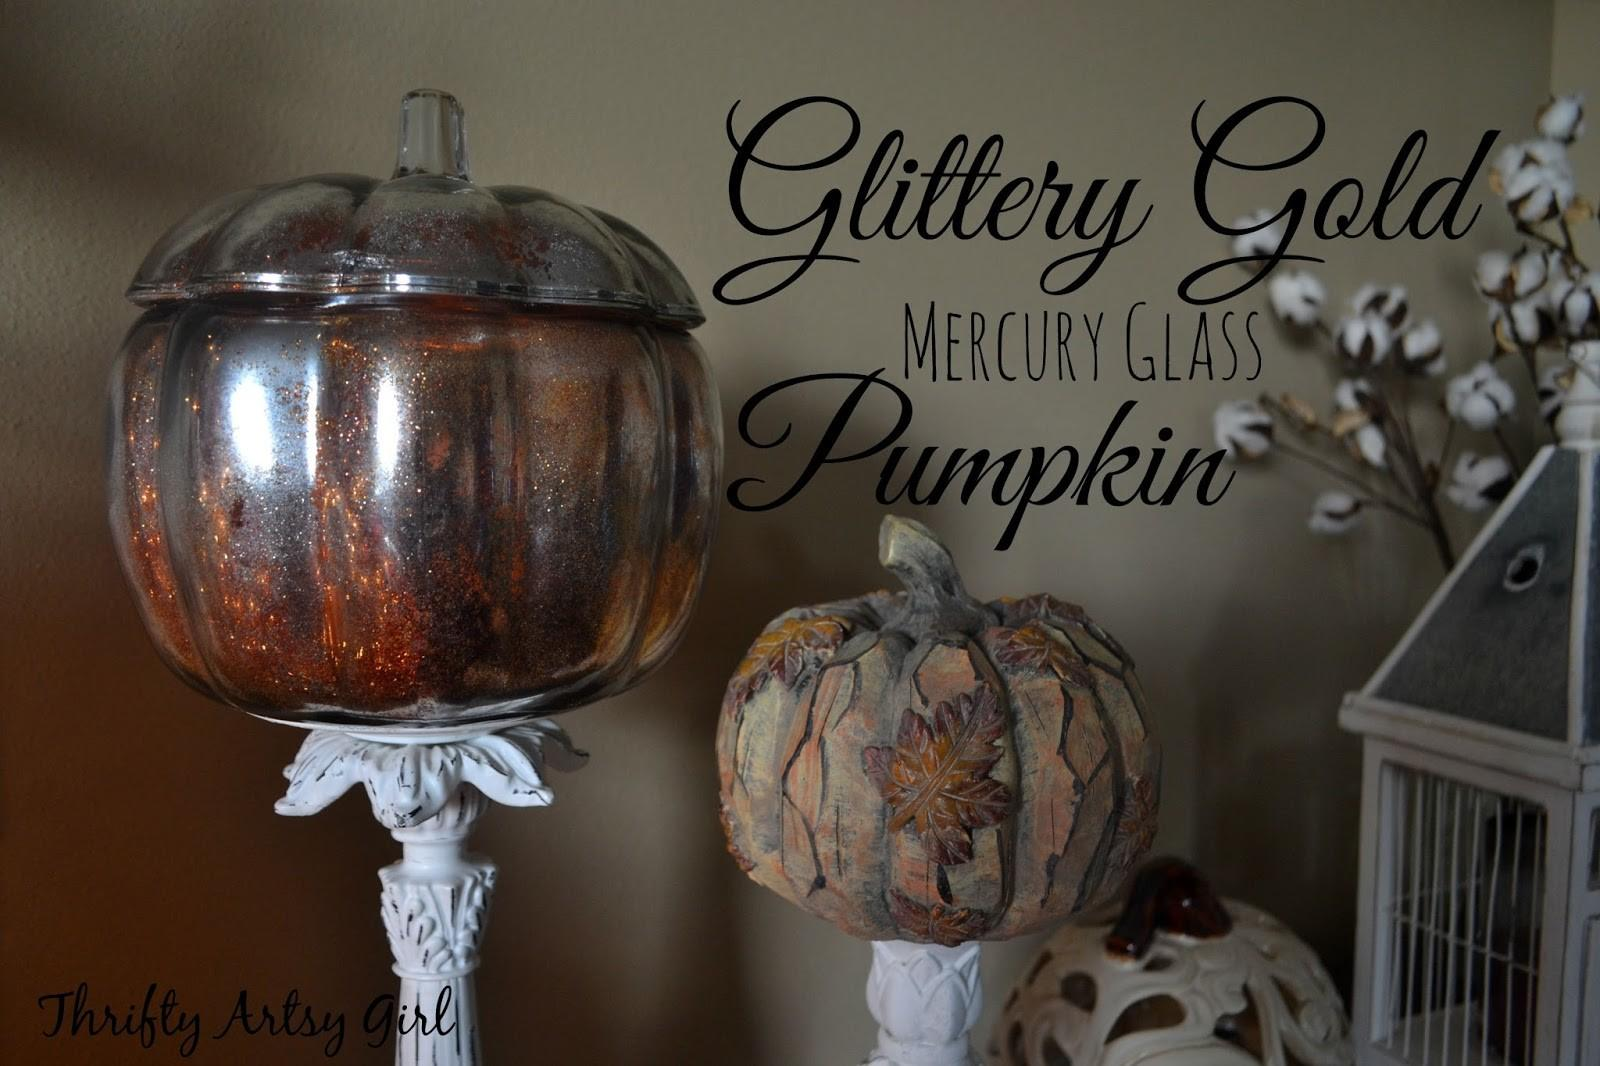 Thrifty Artsy Girl Diy Gold Glitter Mercury Glass Pumpkin